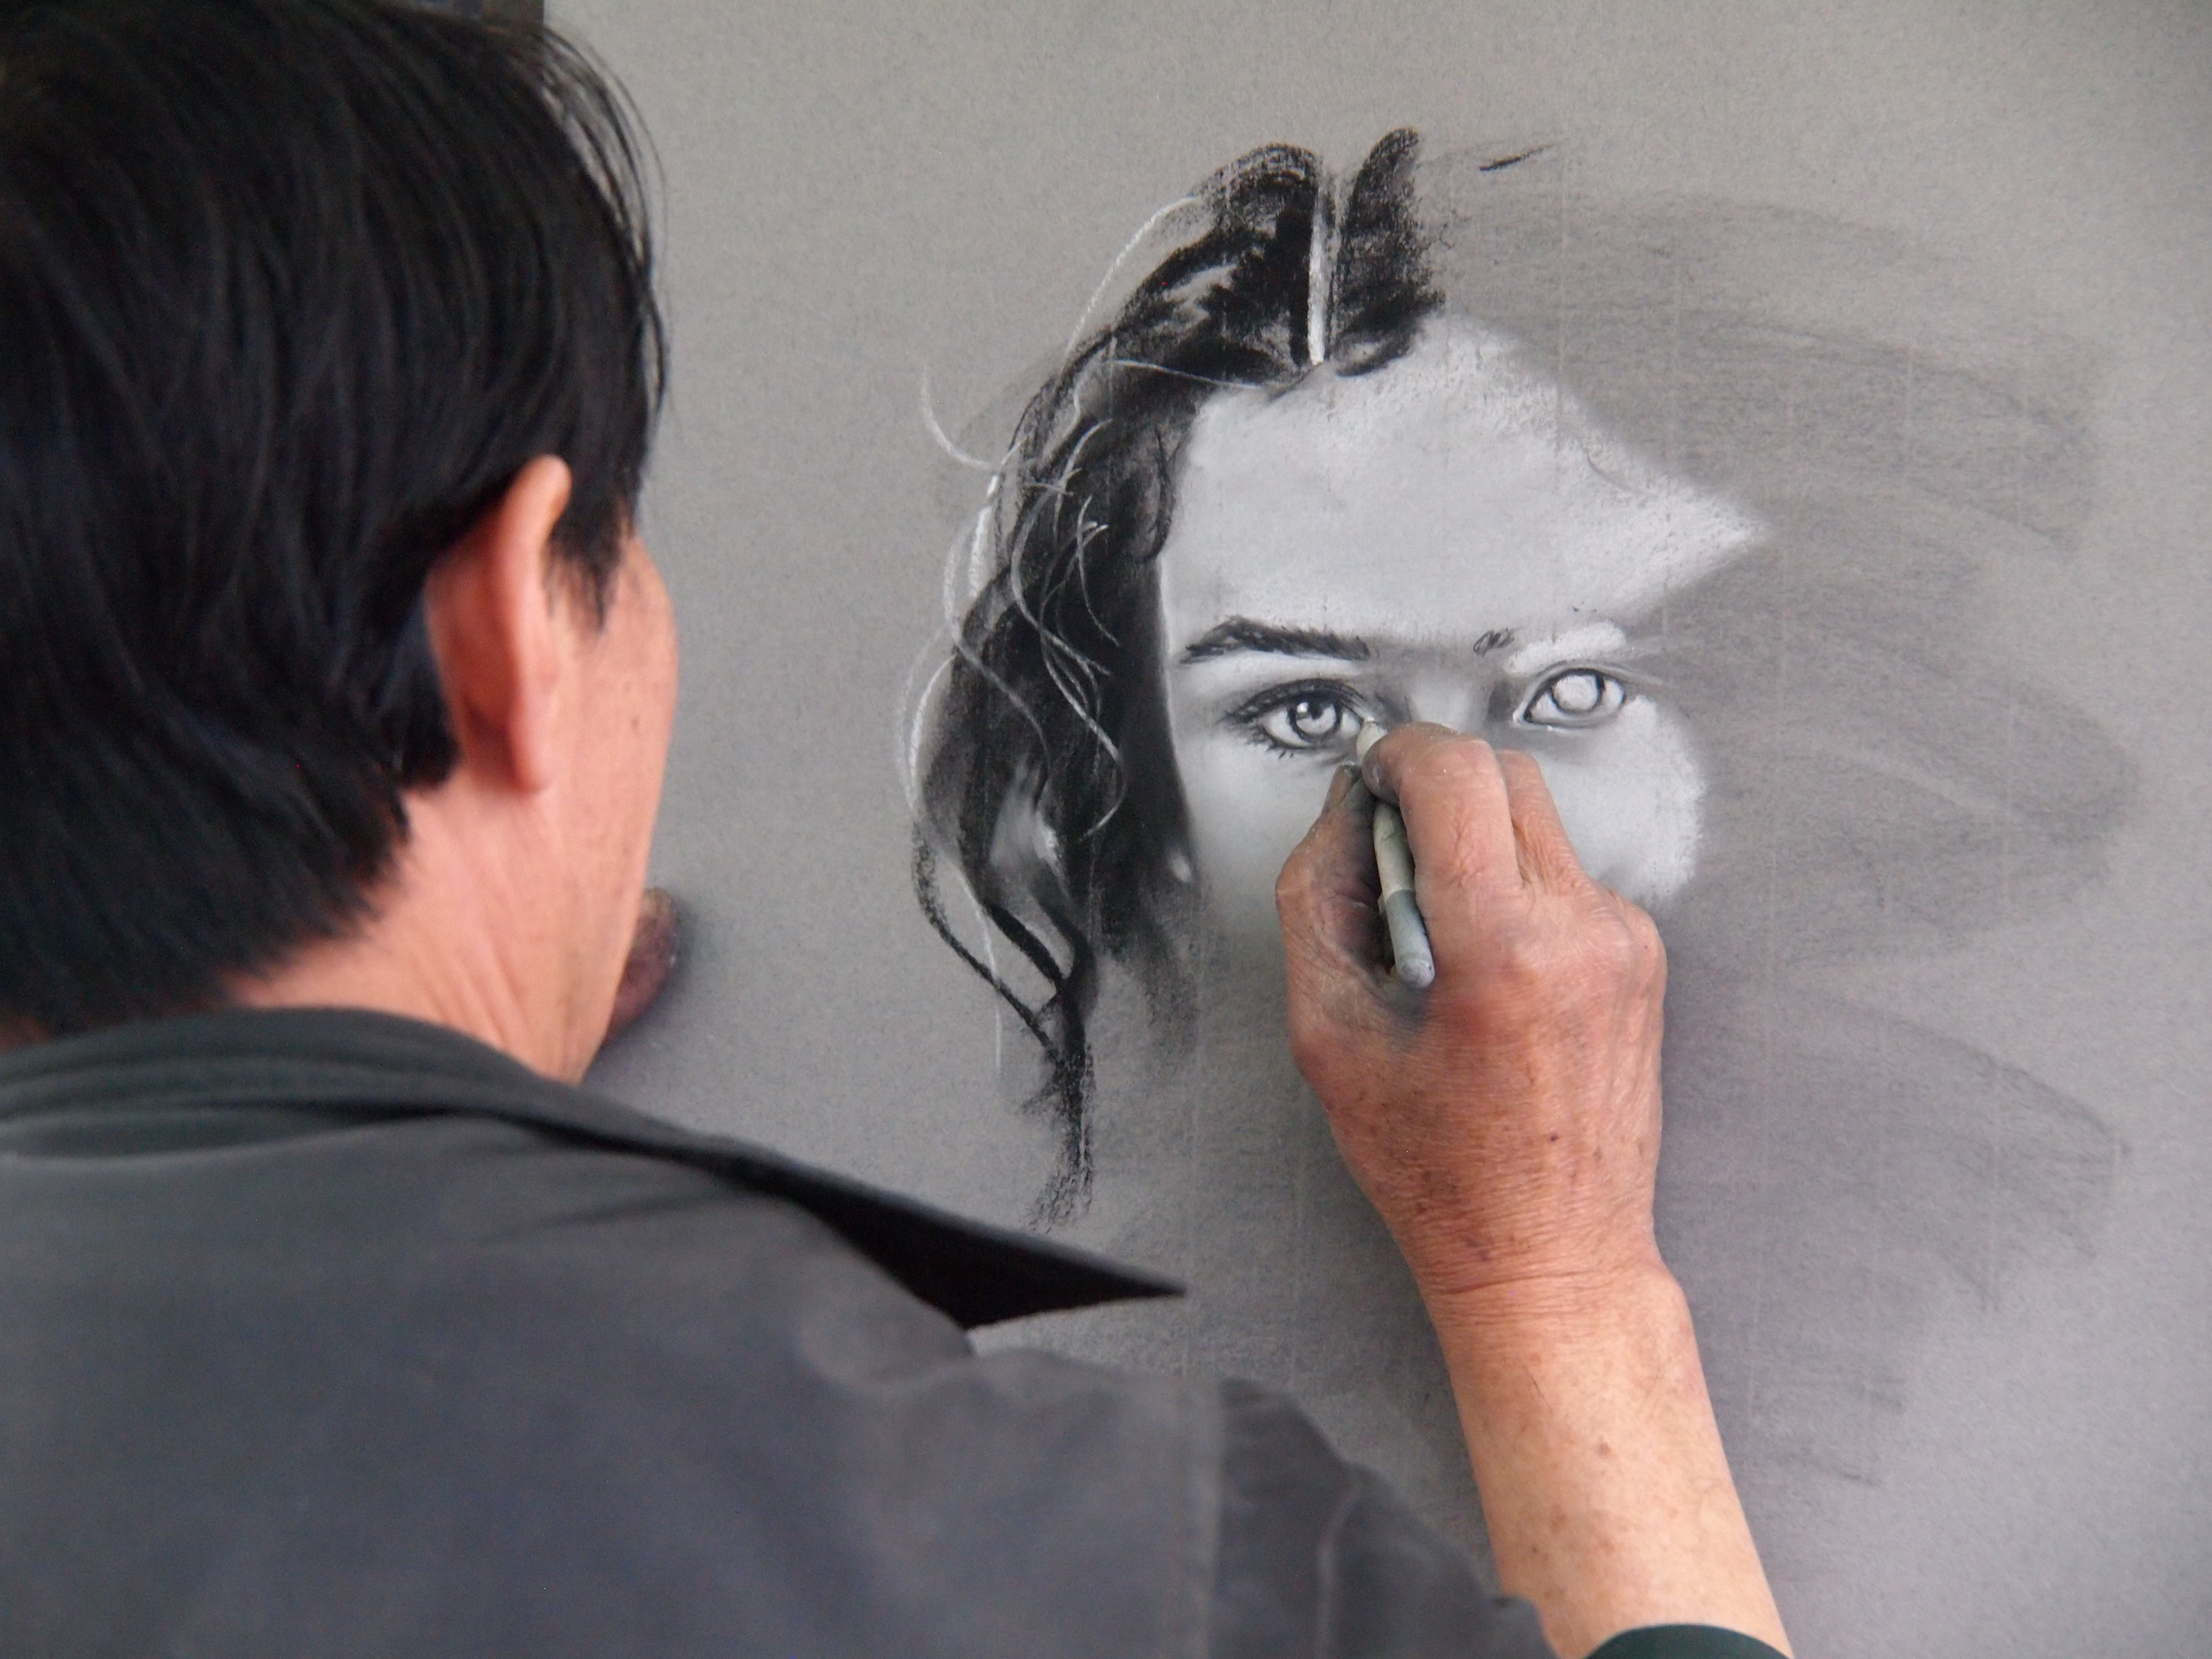 A man painting a woman's face on a grey canvas